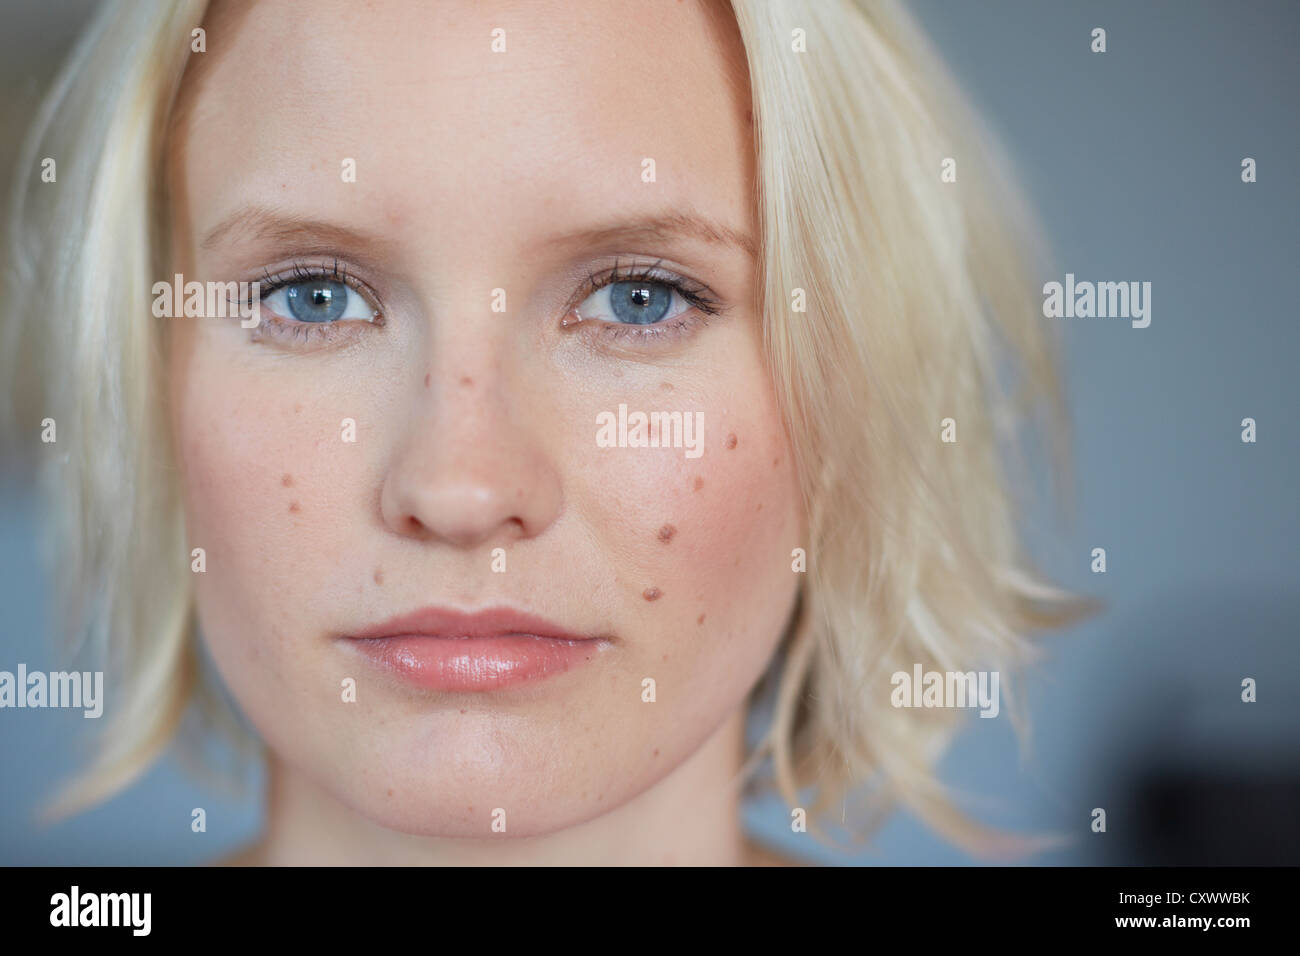 Close up of woman's face Photo Stock